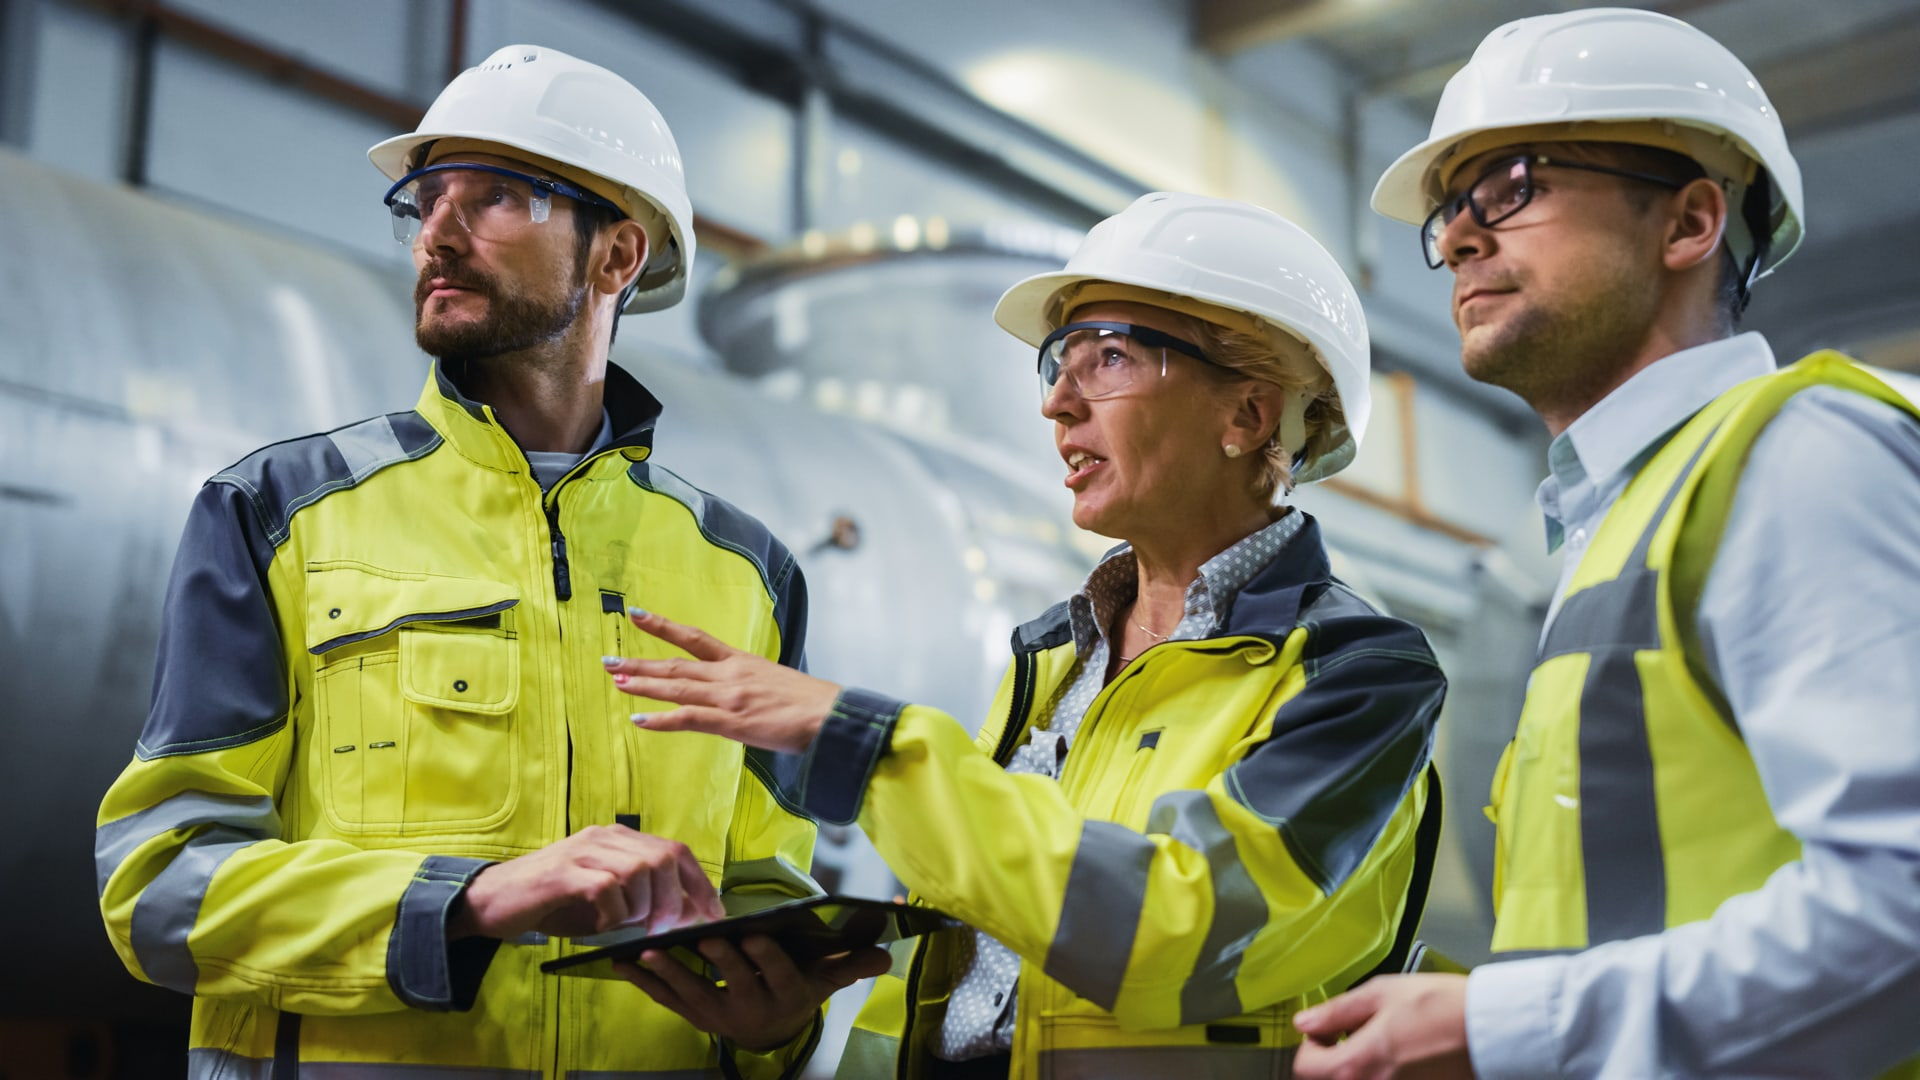 Strong safety awareness and focus, leading to excellent safety outcomes.